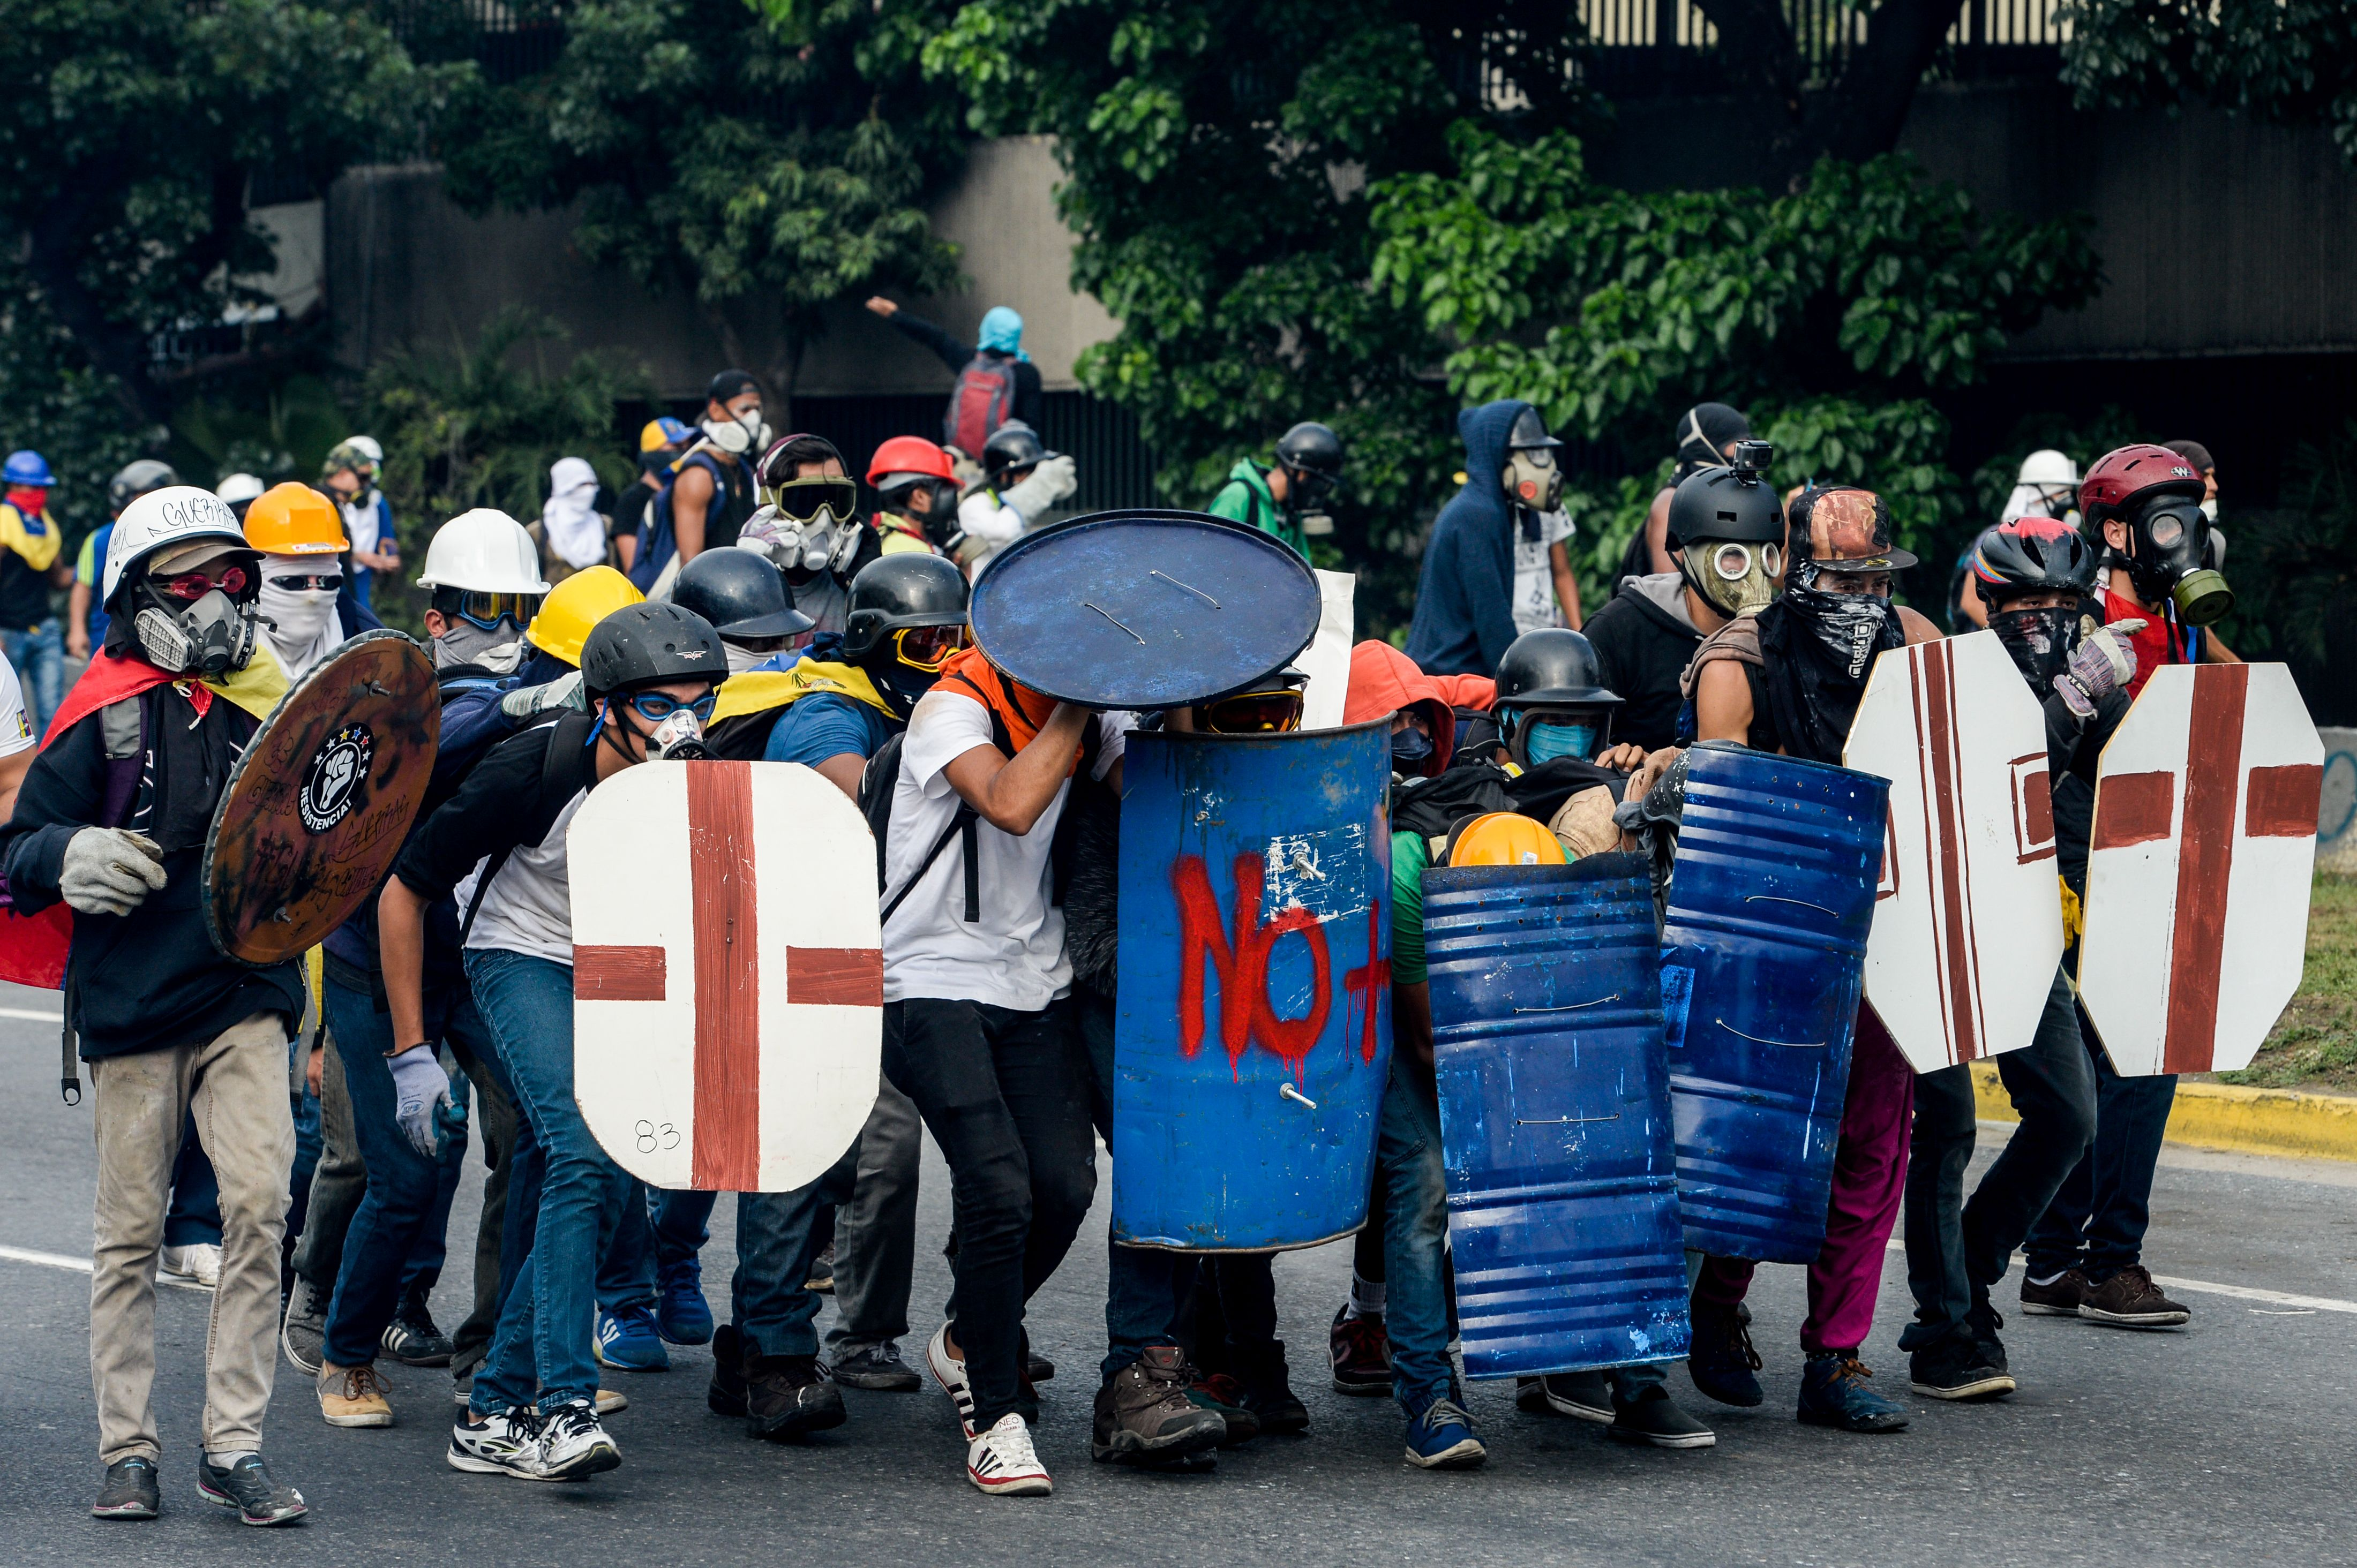 VENEZUELA-CRISIS-MAY DAY-OPPOSITION-PROTEST